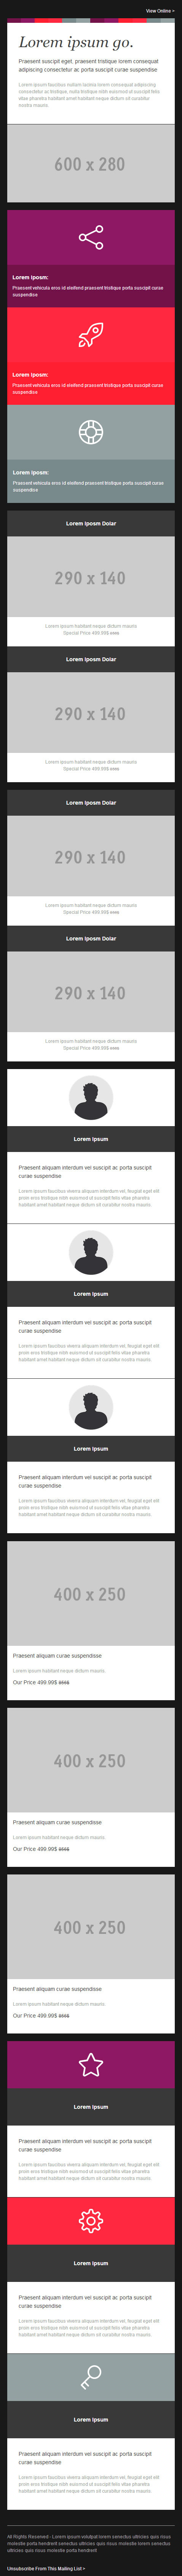 Modulo - Modern And Modular Responsive Email